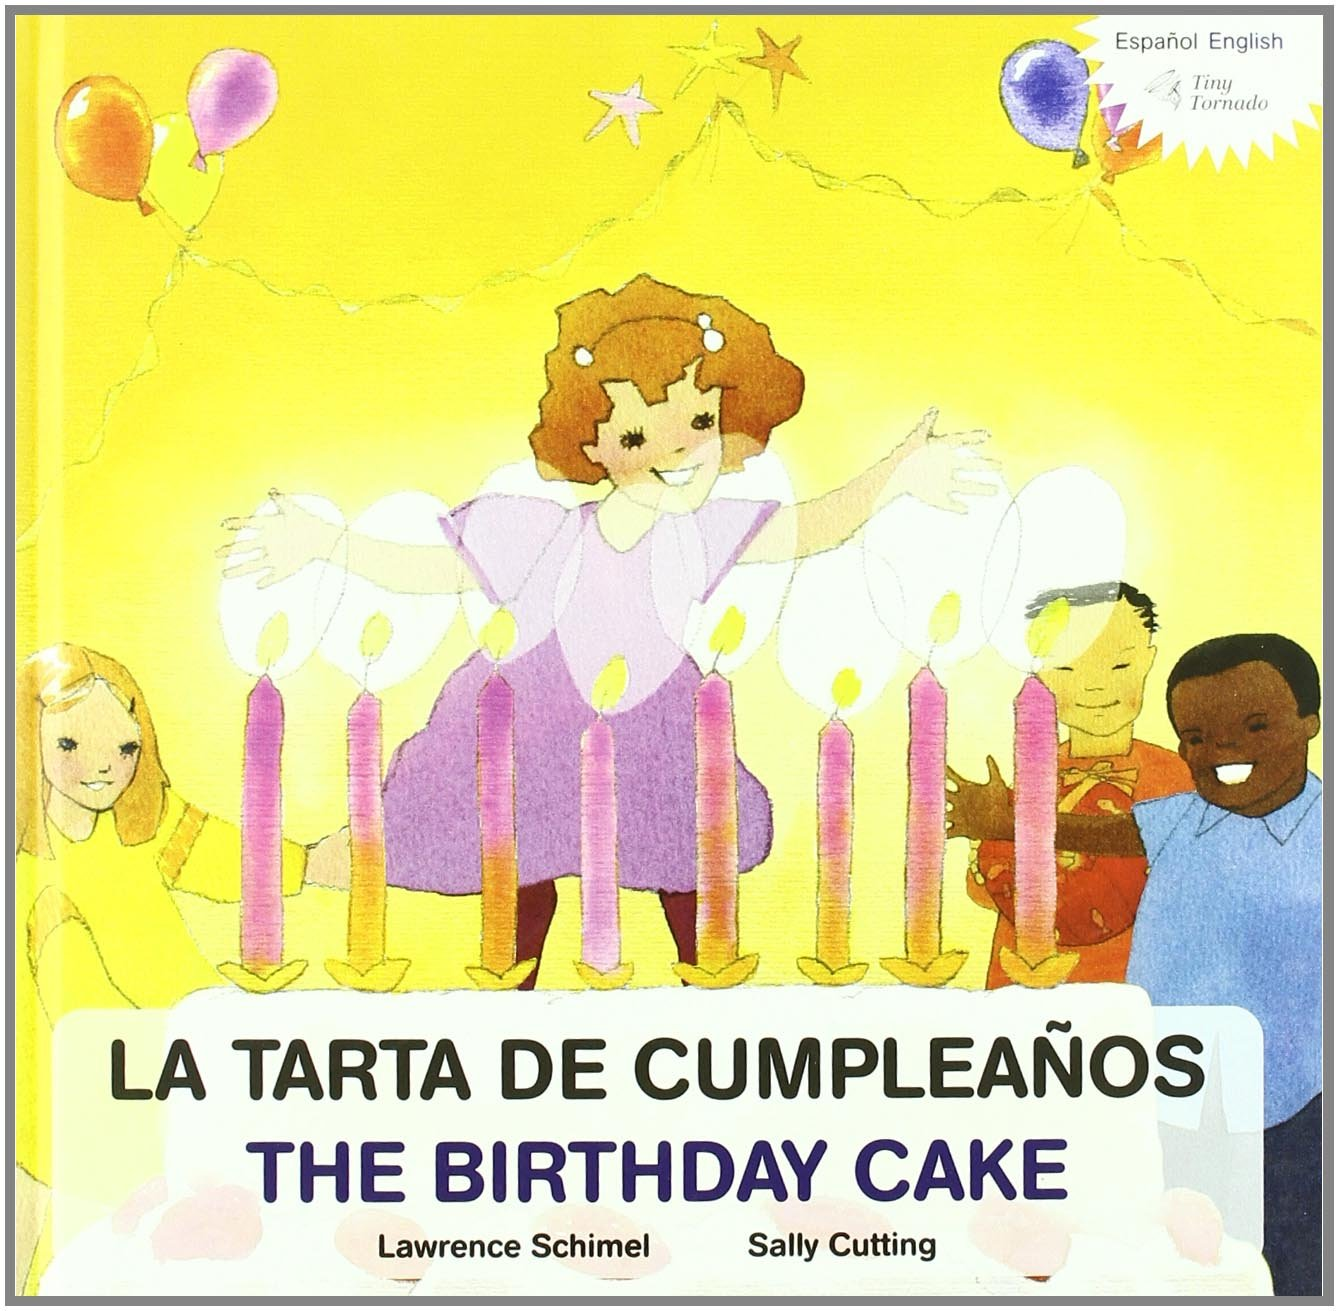 La tarta de cumpleanos / The birthday cake (Tiny Tornado ...